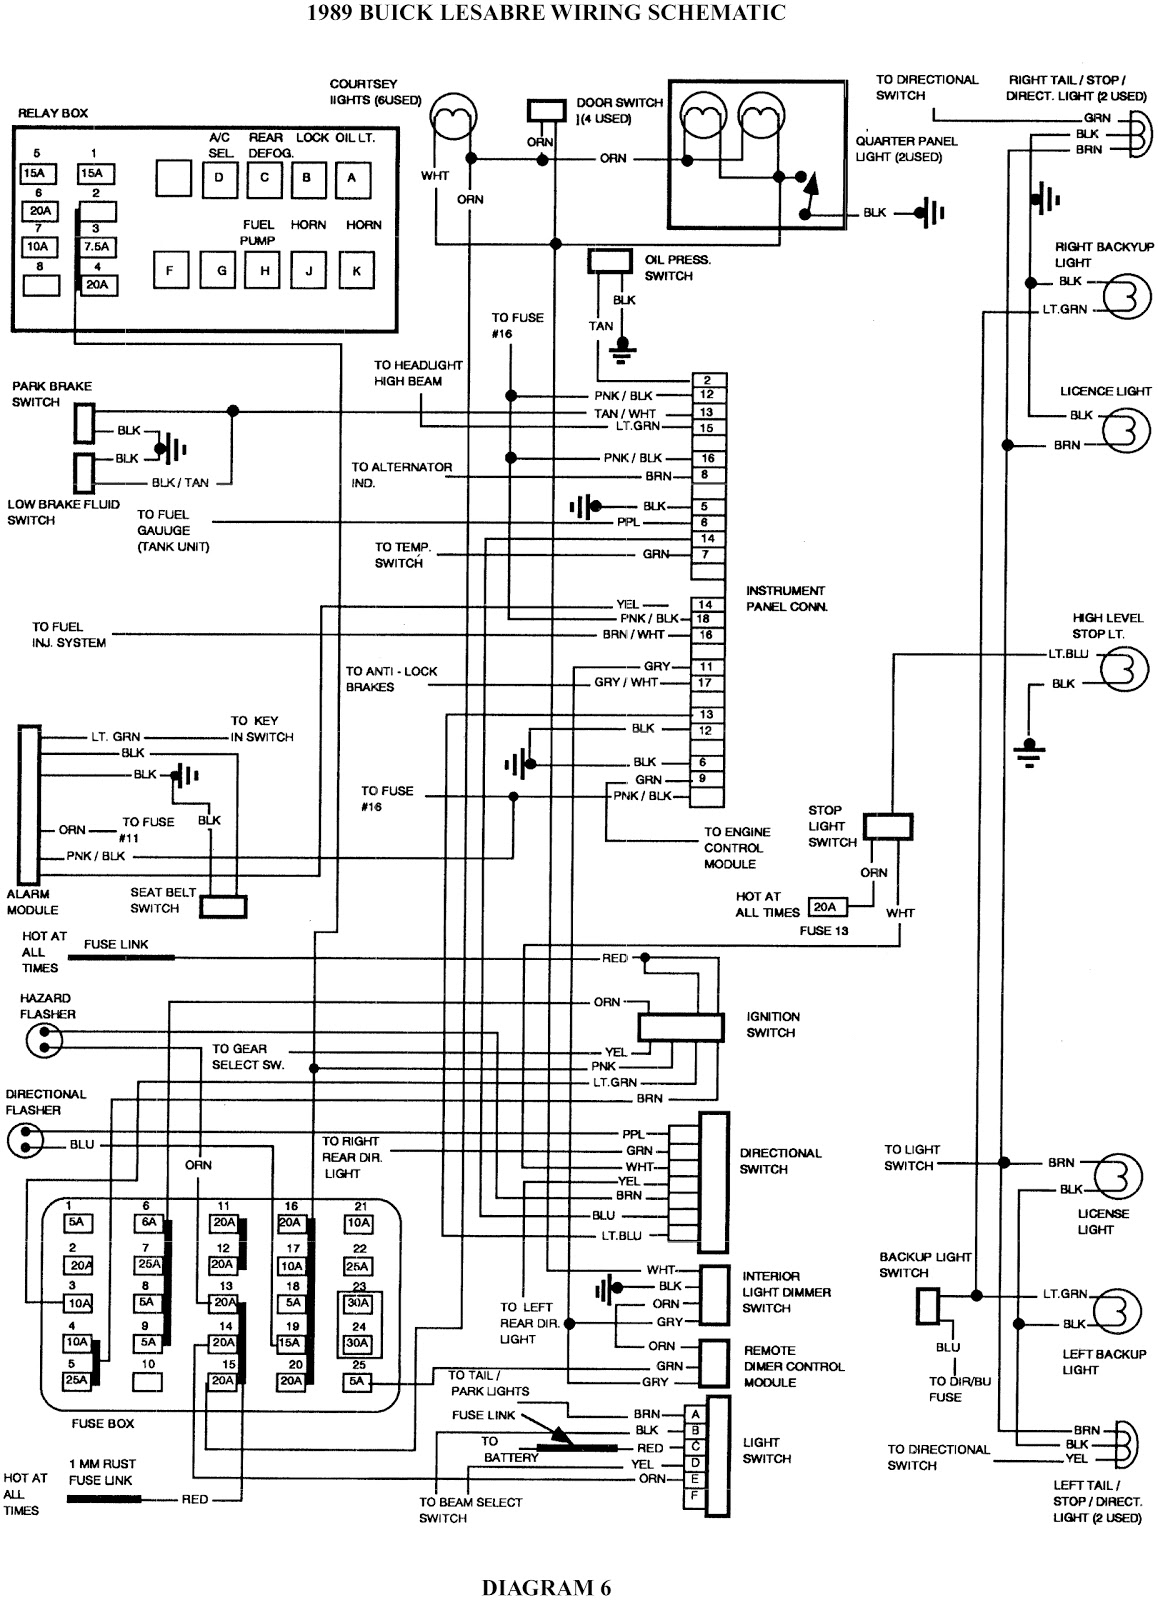 1998 buick century power window wiring diagram - 1966 mustang rear light wiring  diagram for wiring diagram schematics  wiring diagram schematics